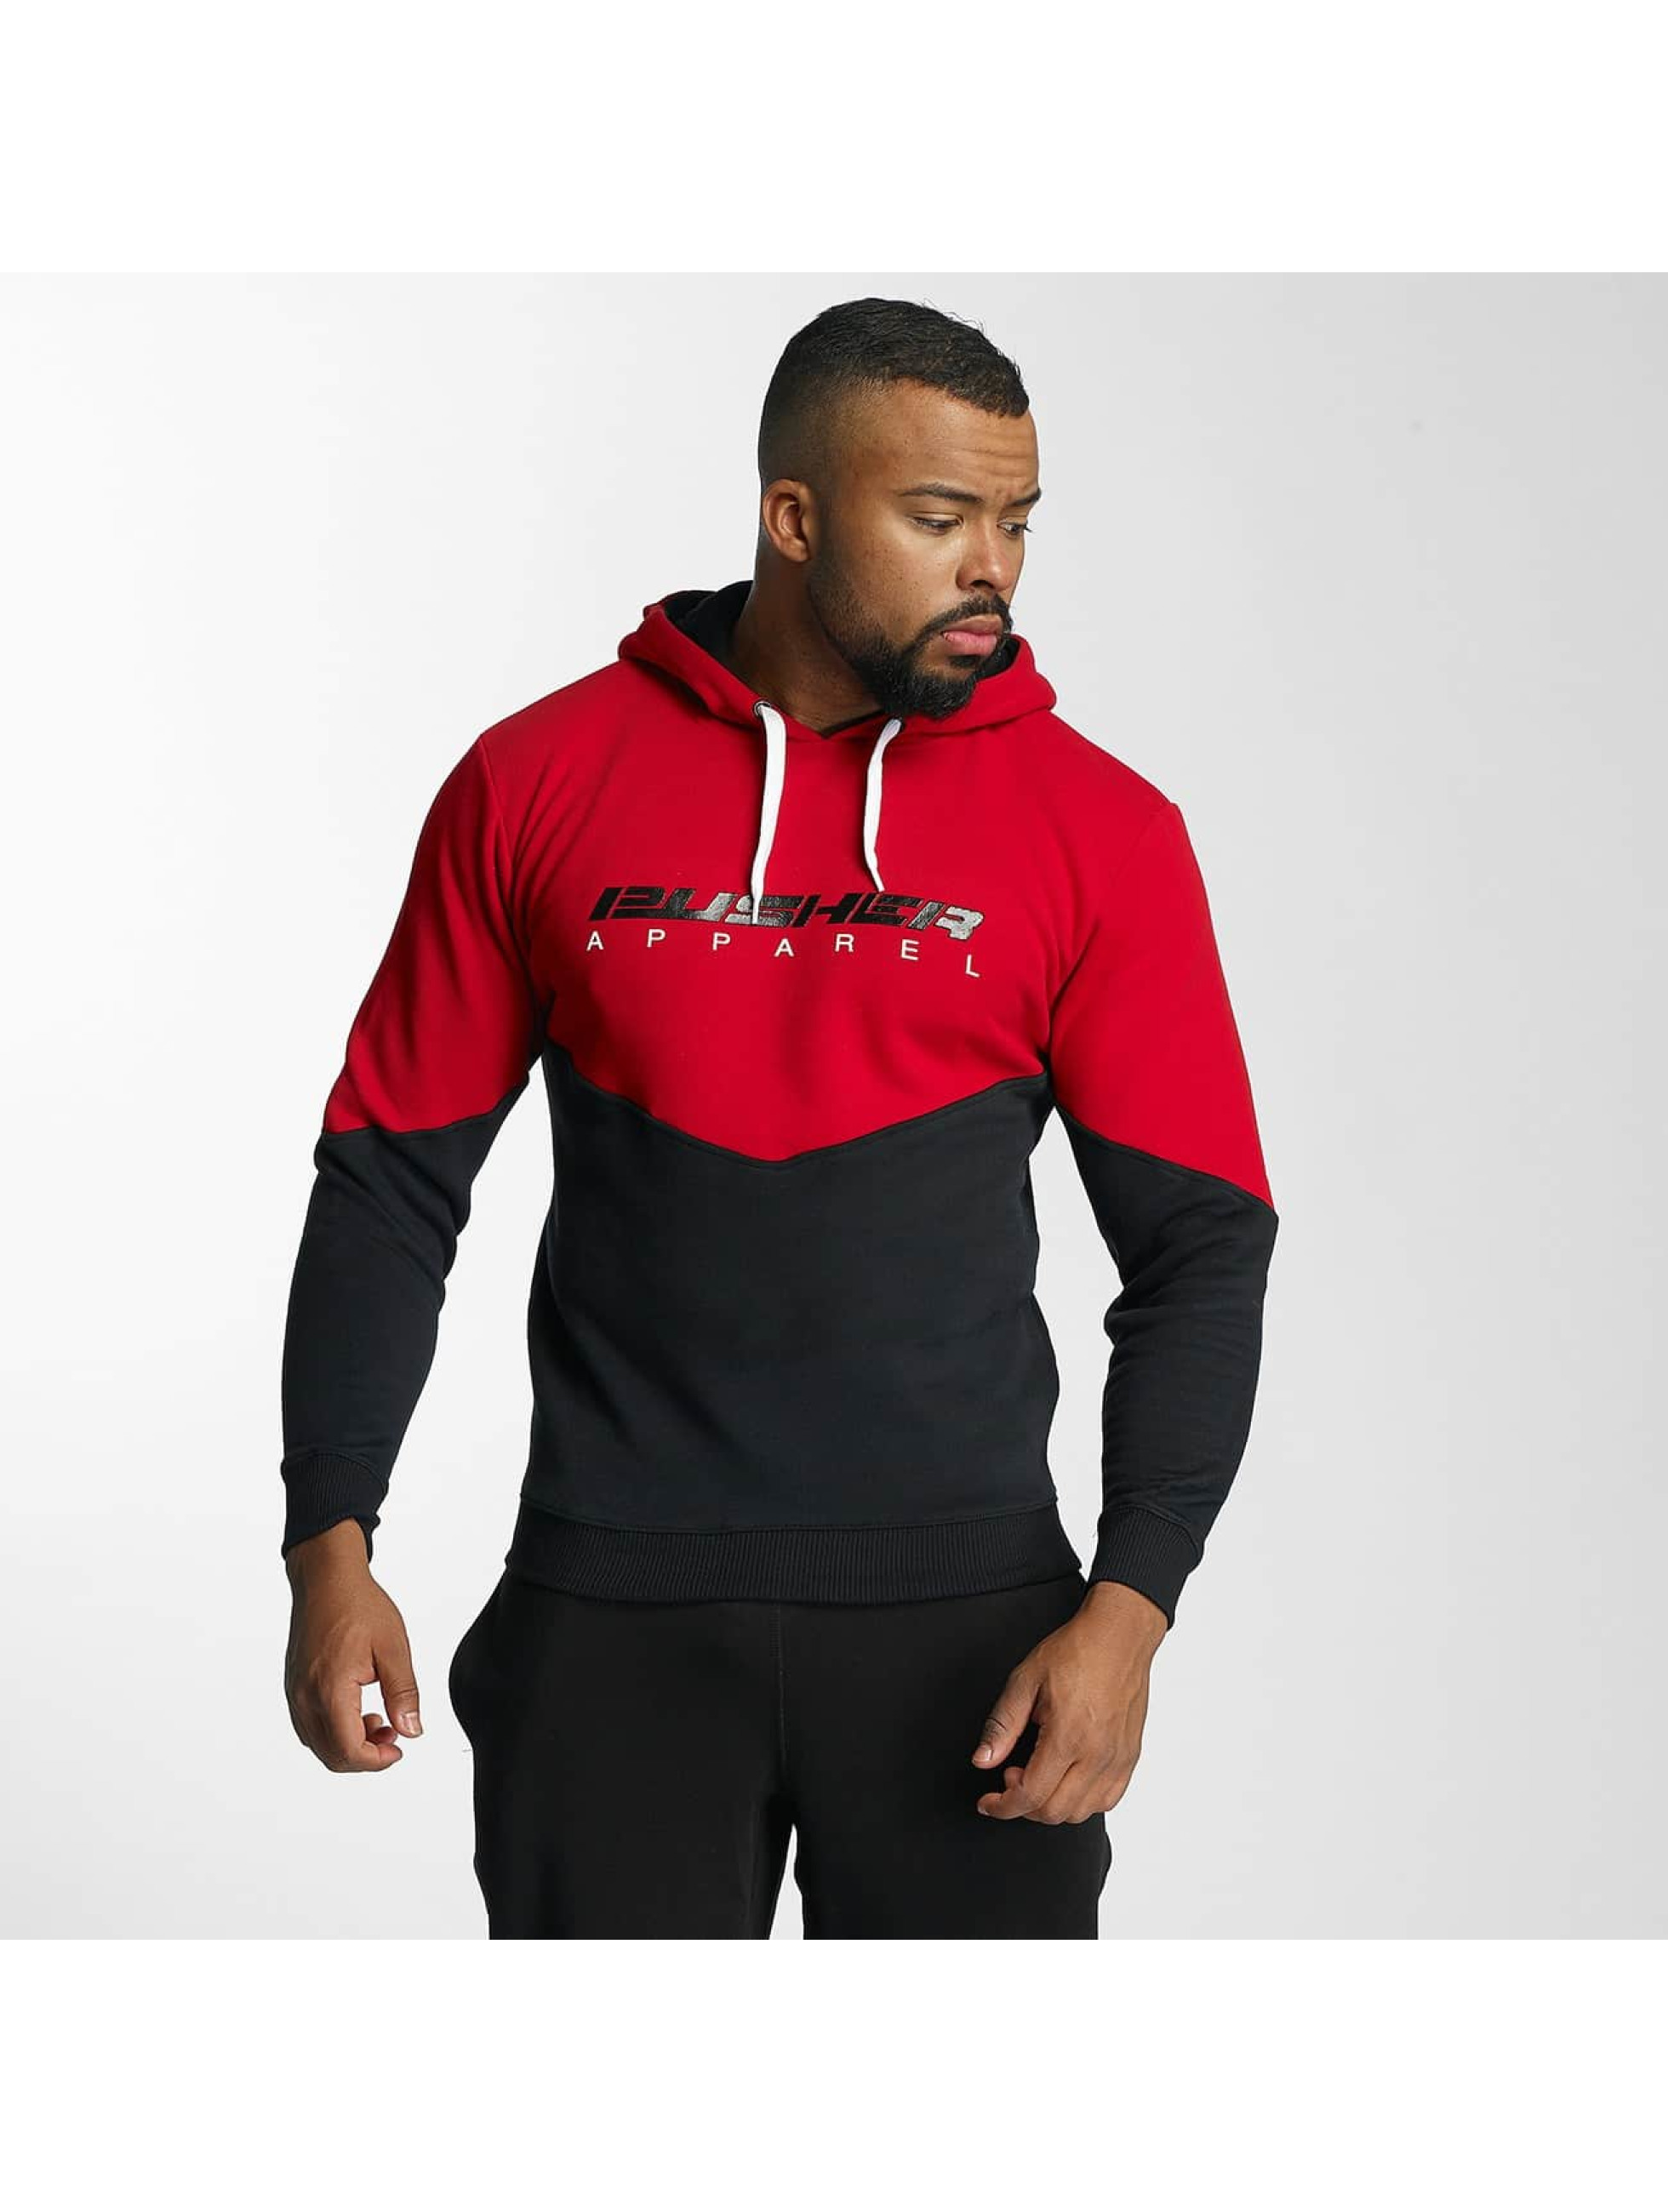 Pusher Apparel Hoodies 211 Rob sort